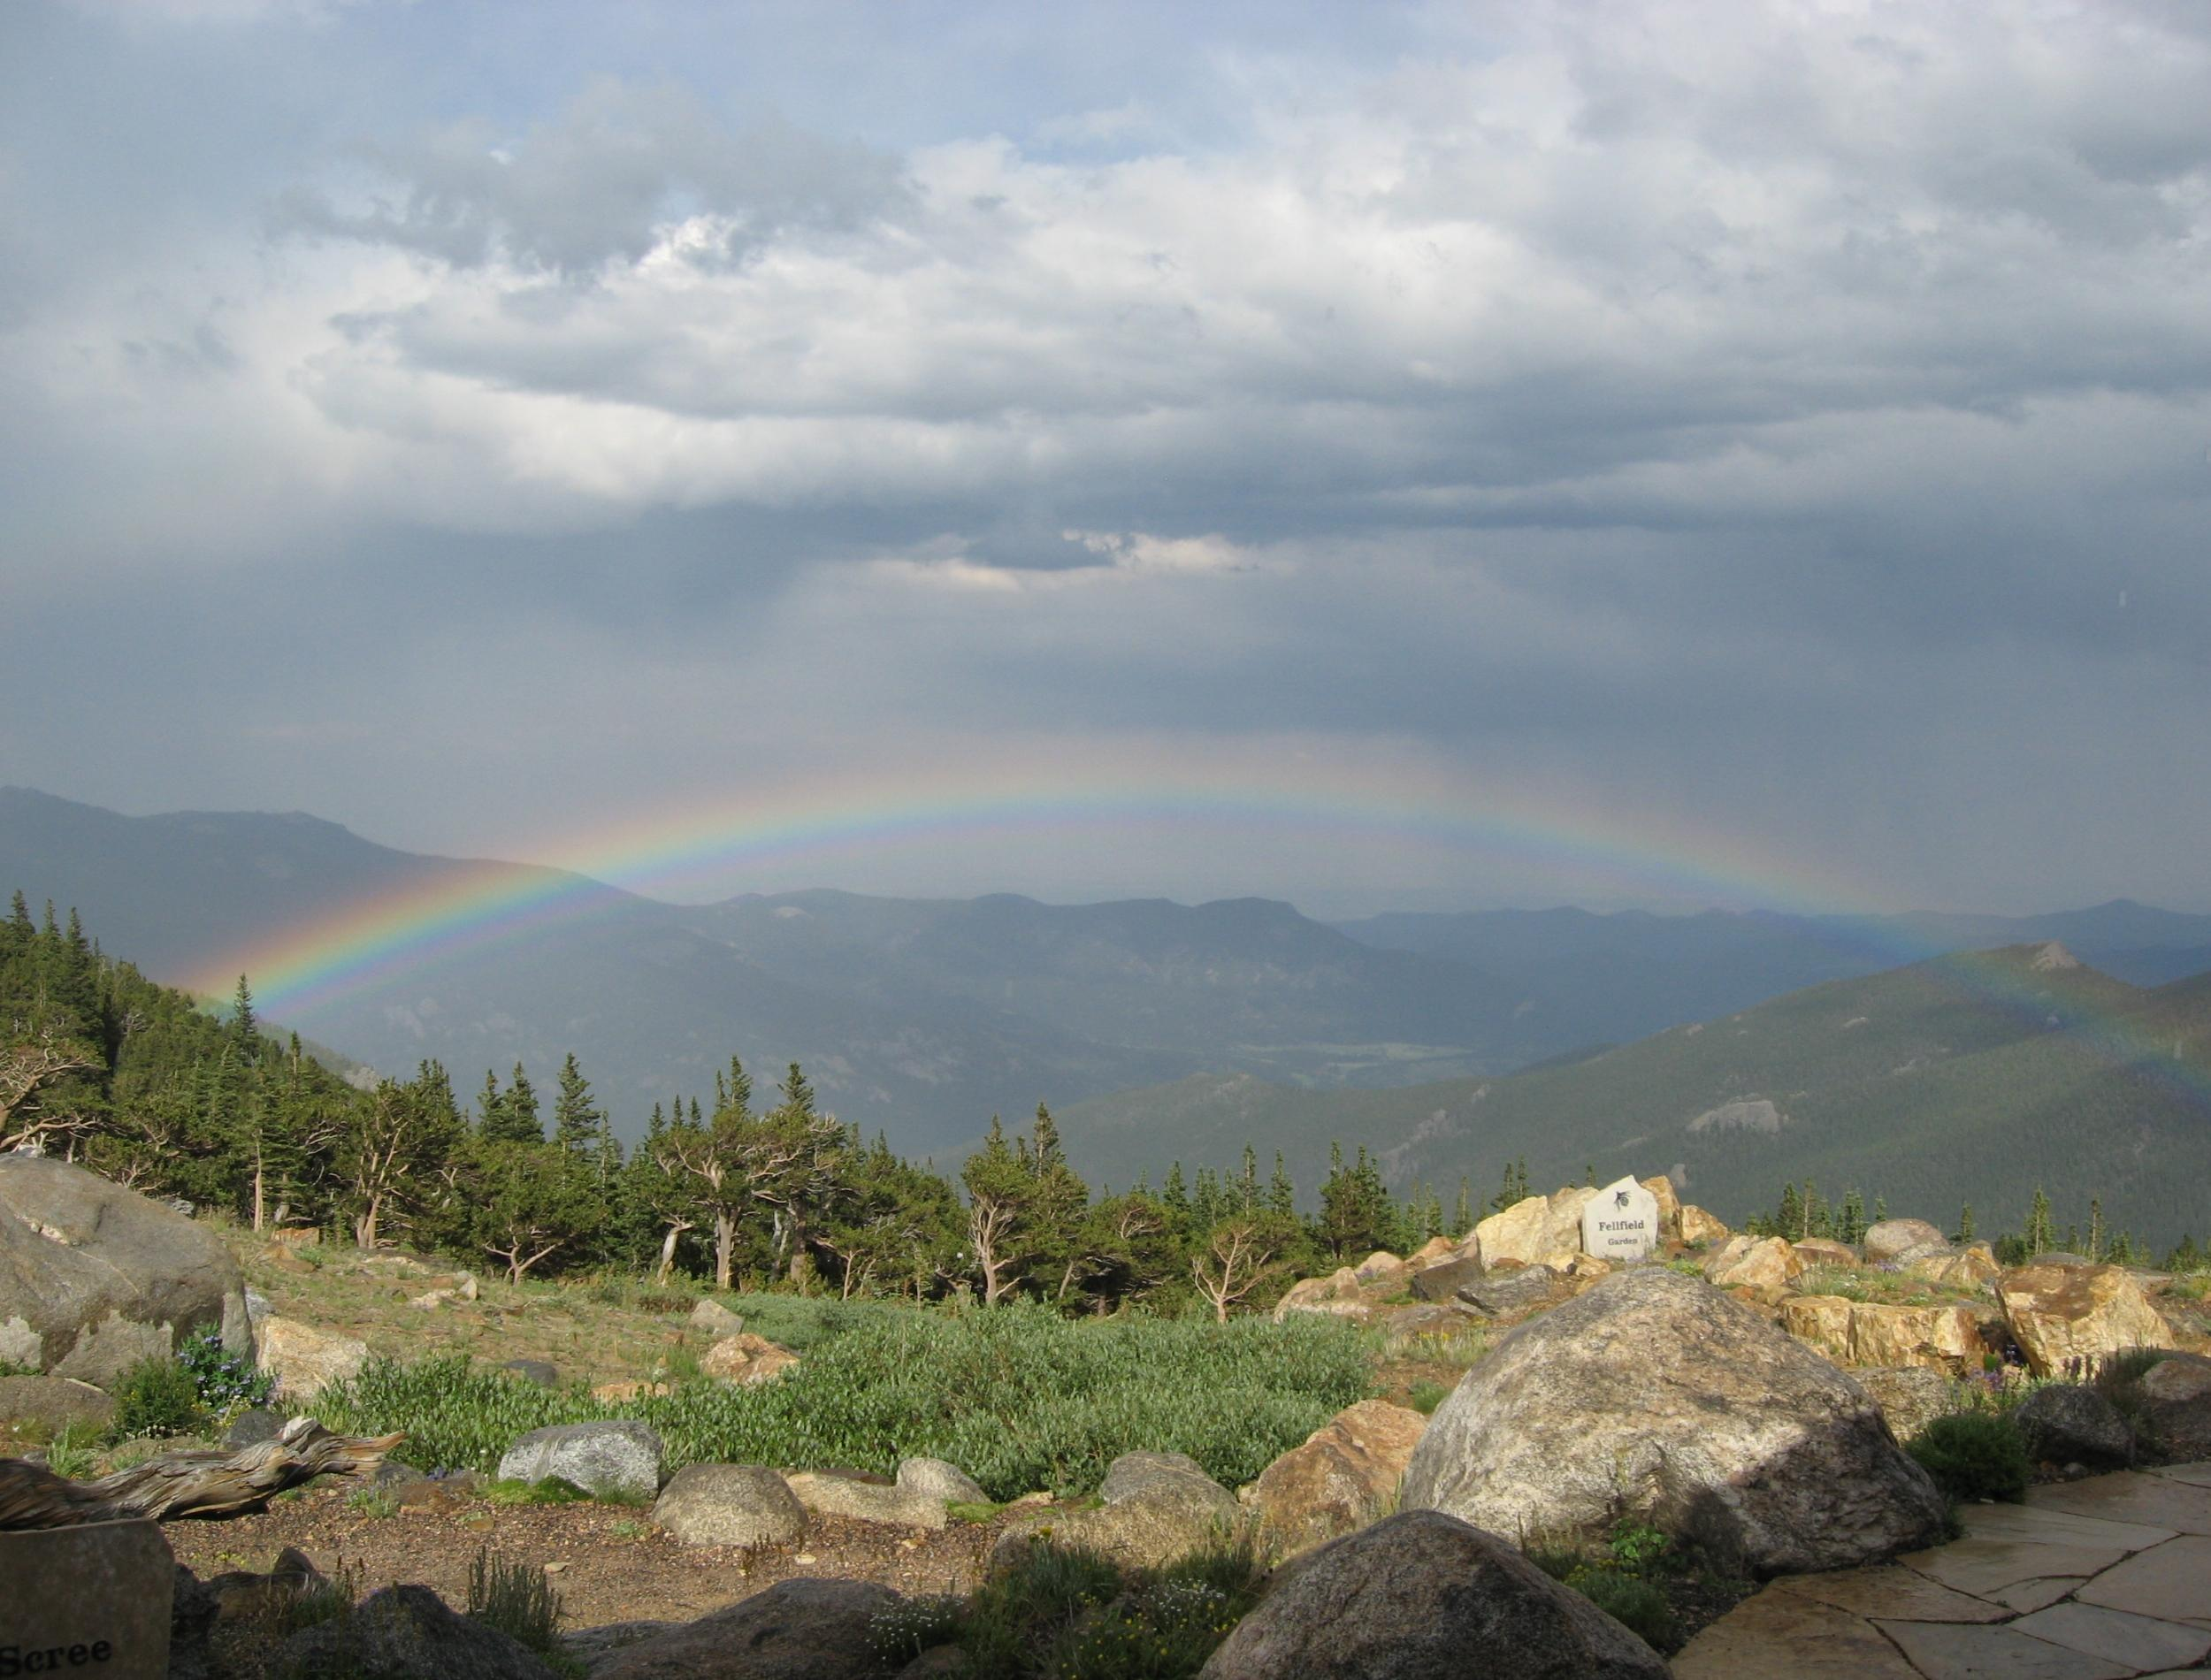 Rainbow above bristlecone pine trees.